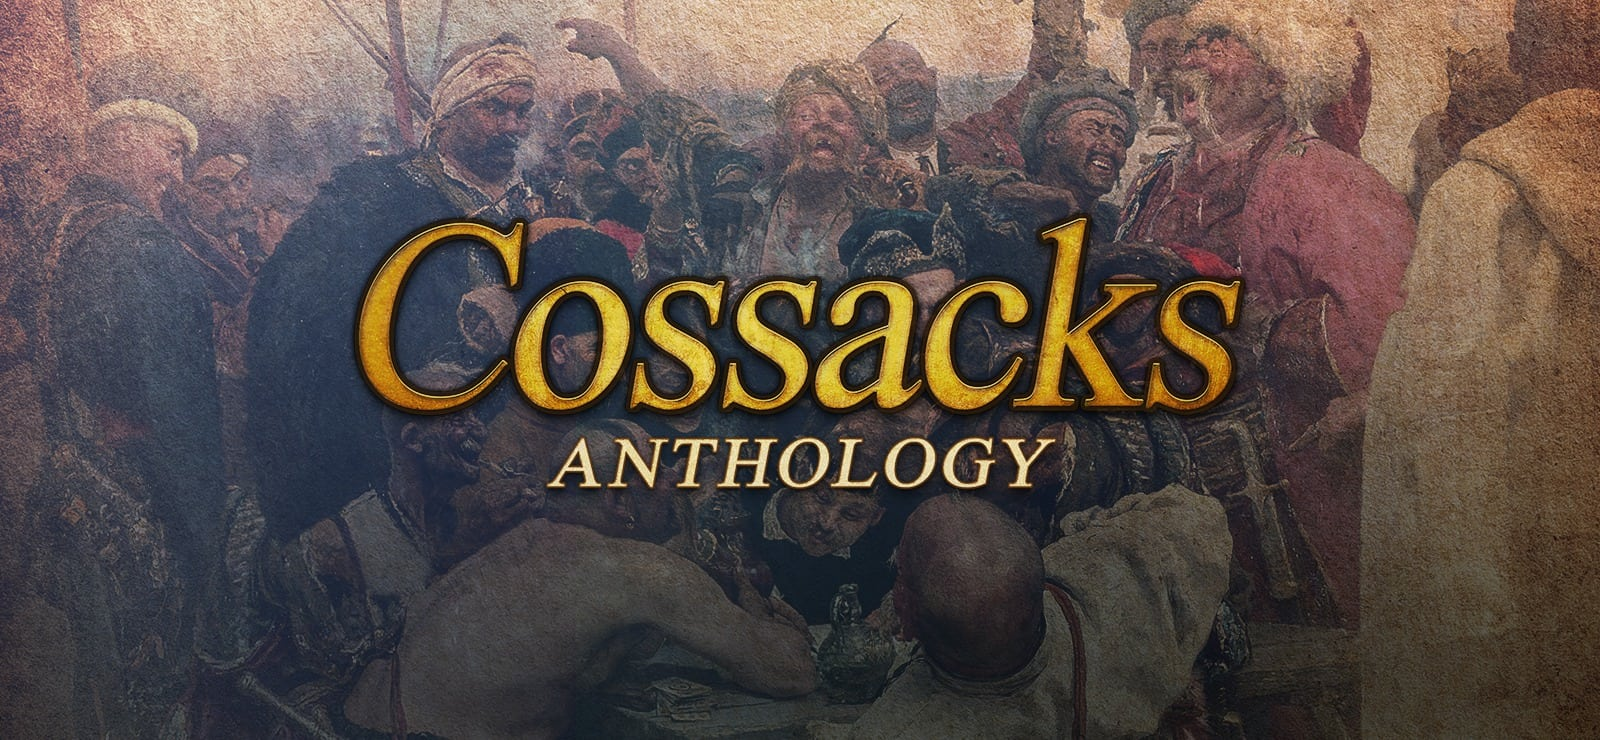 Cossacks Anthology